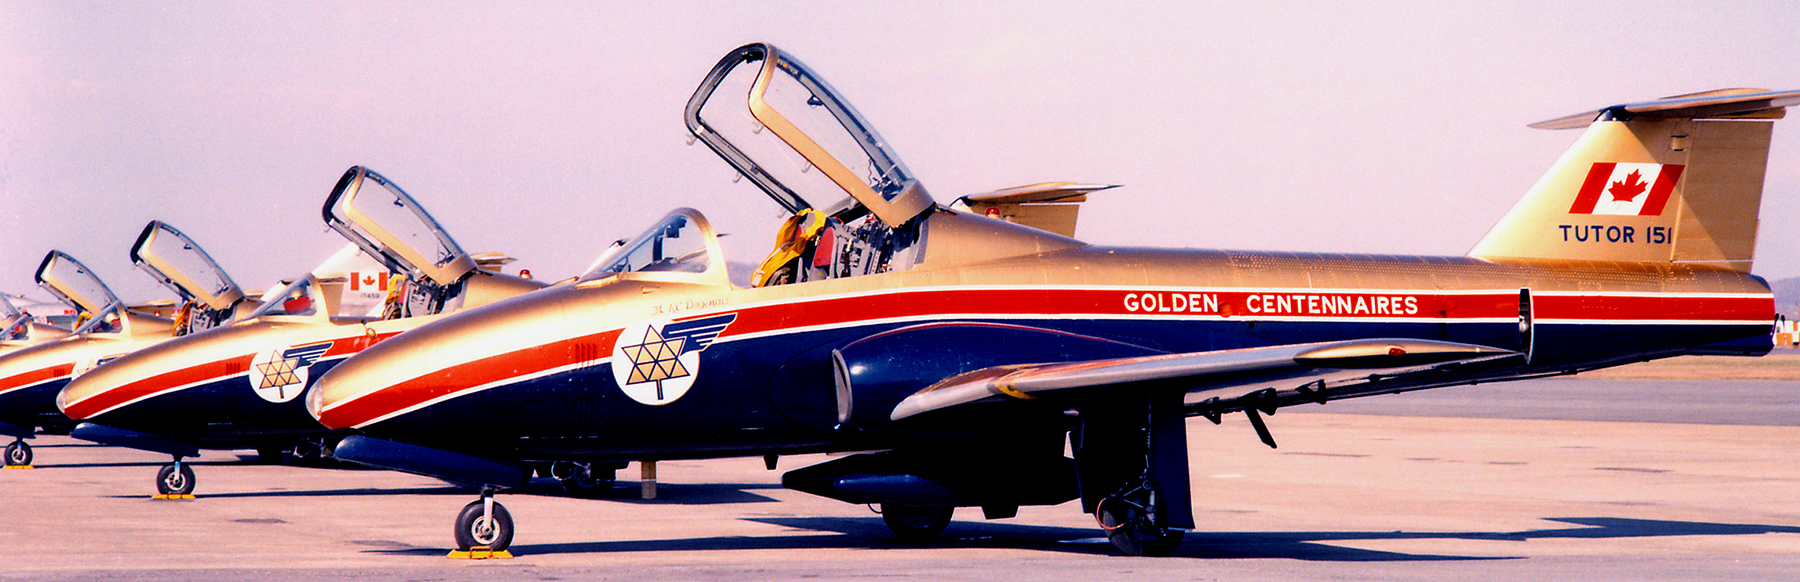 The Centennaires CT-114 Tutors display a paint scheme designed by Flight Lieutenant Geoff Bennet while he was serving at Training Command Headquarters in Winnipeg, Manitoba. PHOTO: Courtesy of Lieutenant-Colonel (retired) Dan Dempsey